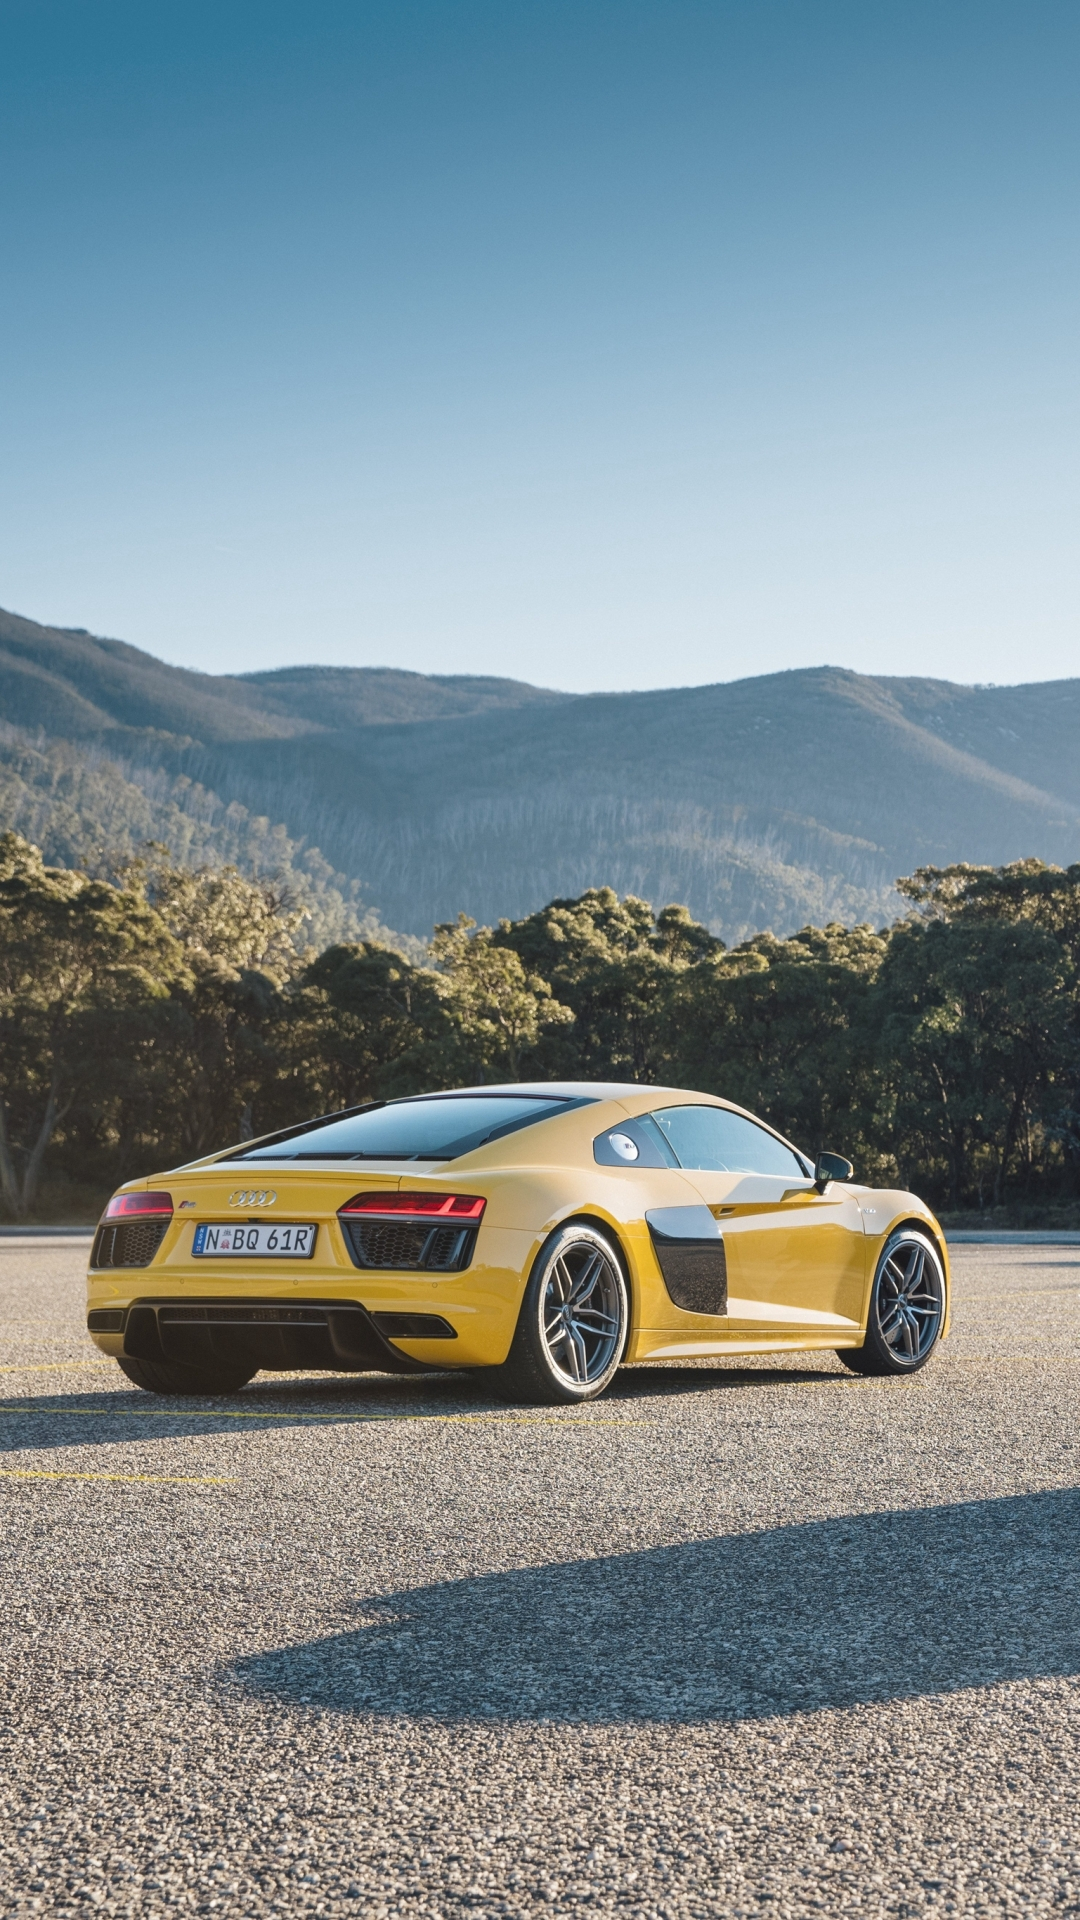 10 Most Popular Audi R8 Iphone Wallpaper Full Hd 1080p For Pc